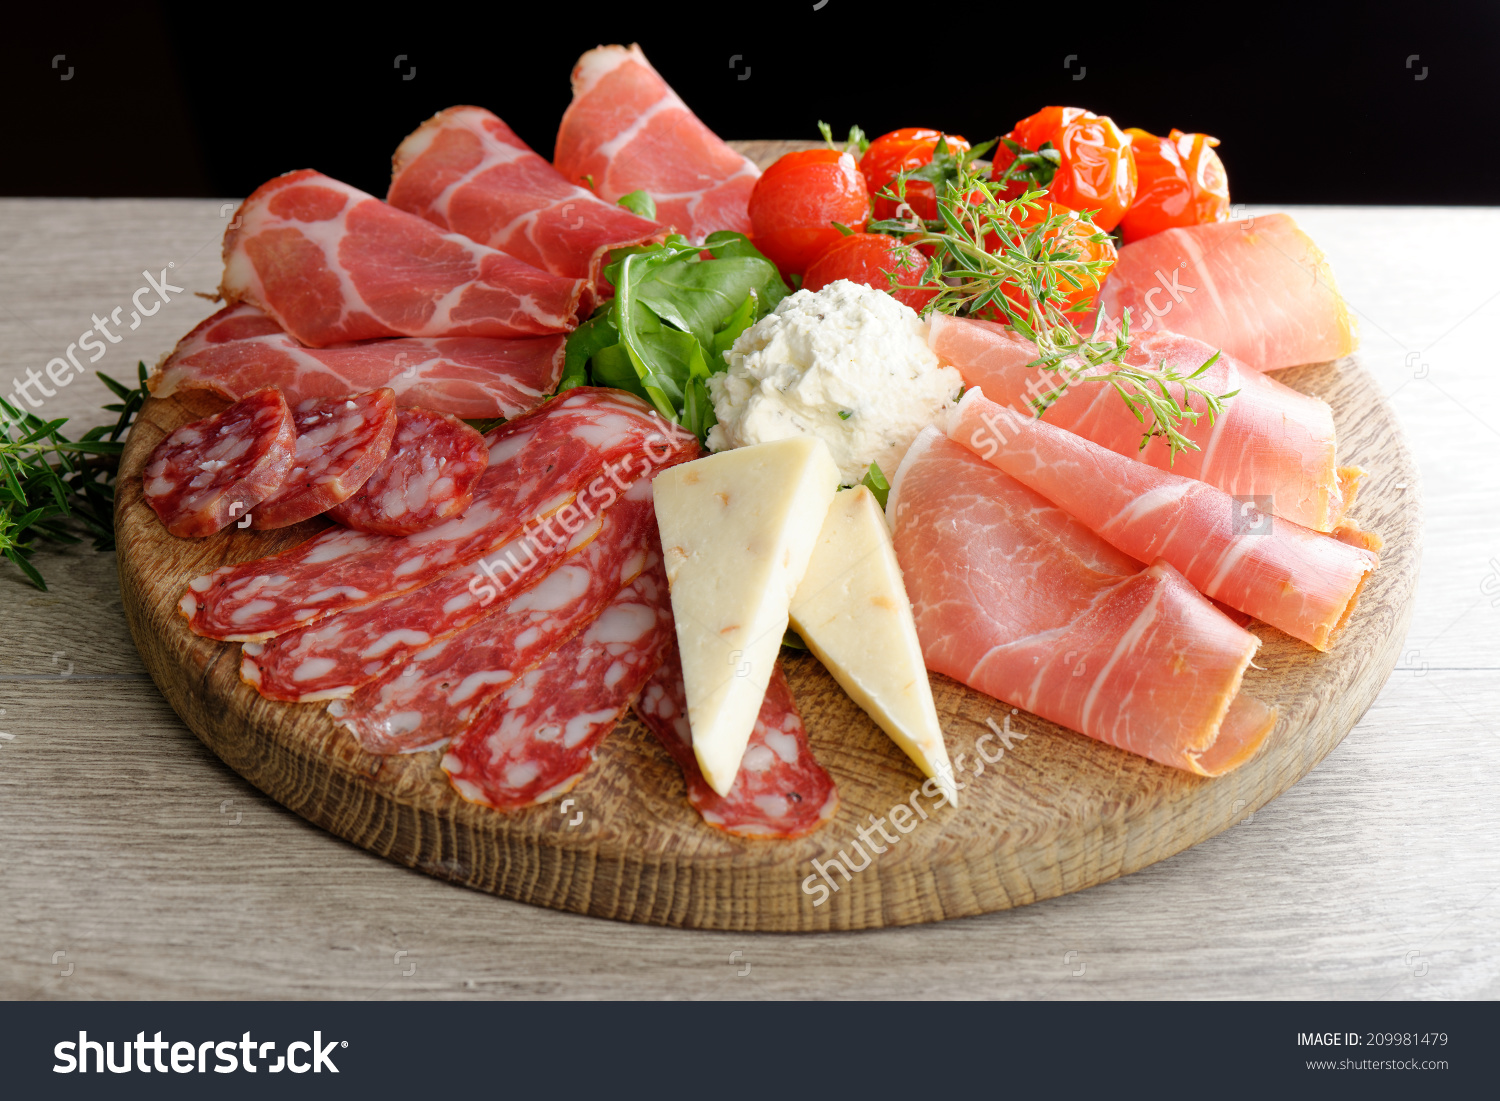 Arrangement Delicatessen Cold Cuts Smoked Ham Stock Photo.